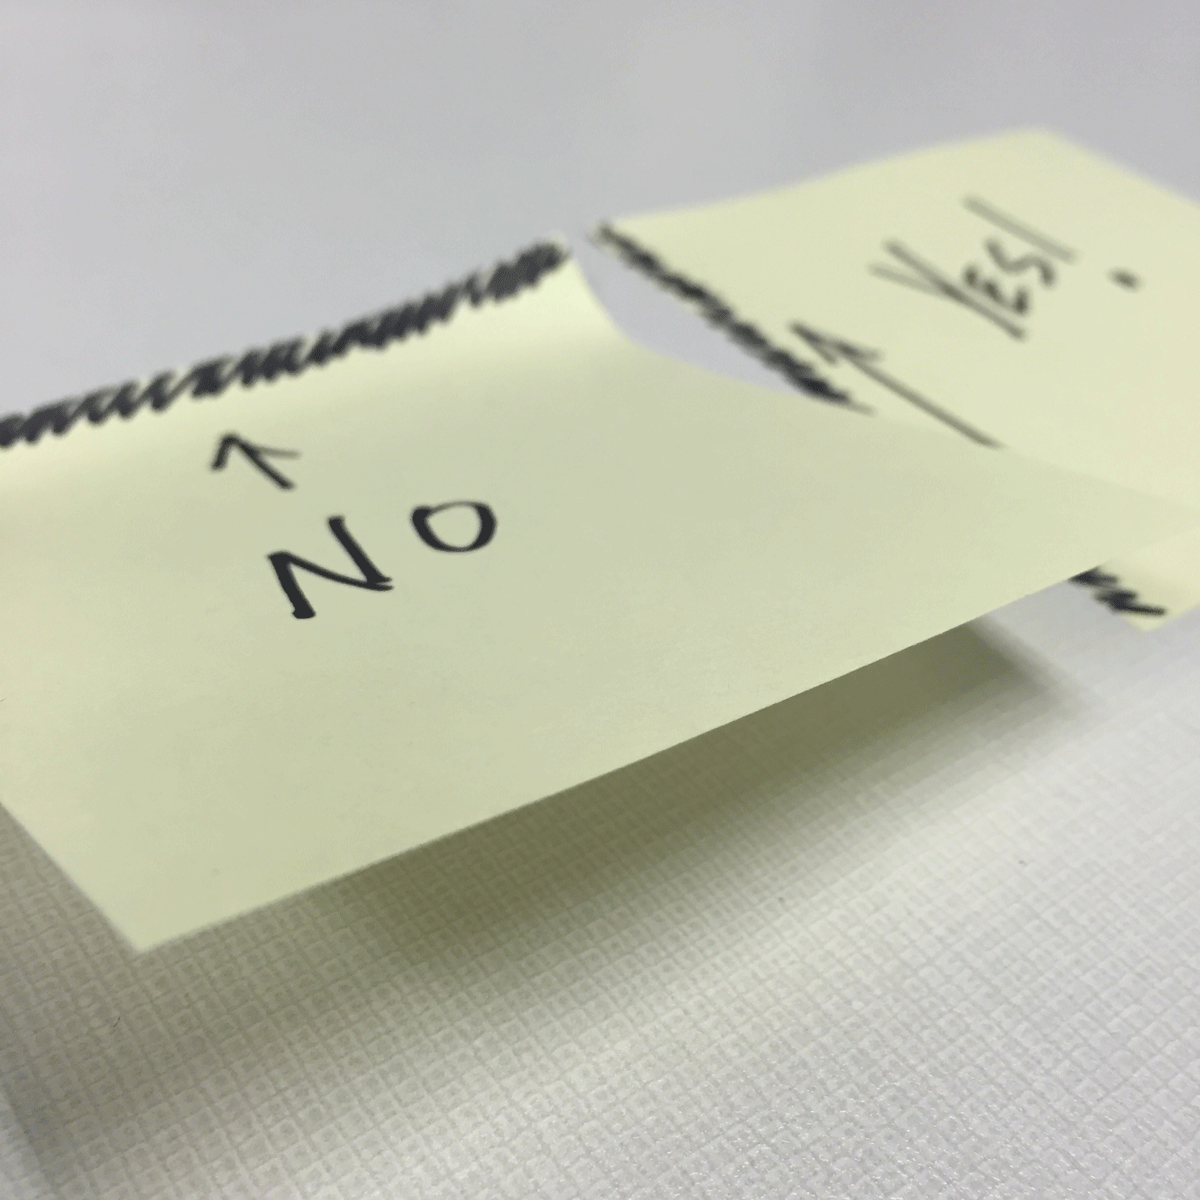 The wrong way to peel post-it notes and the right way side by side